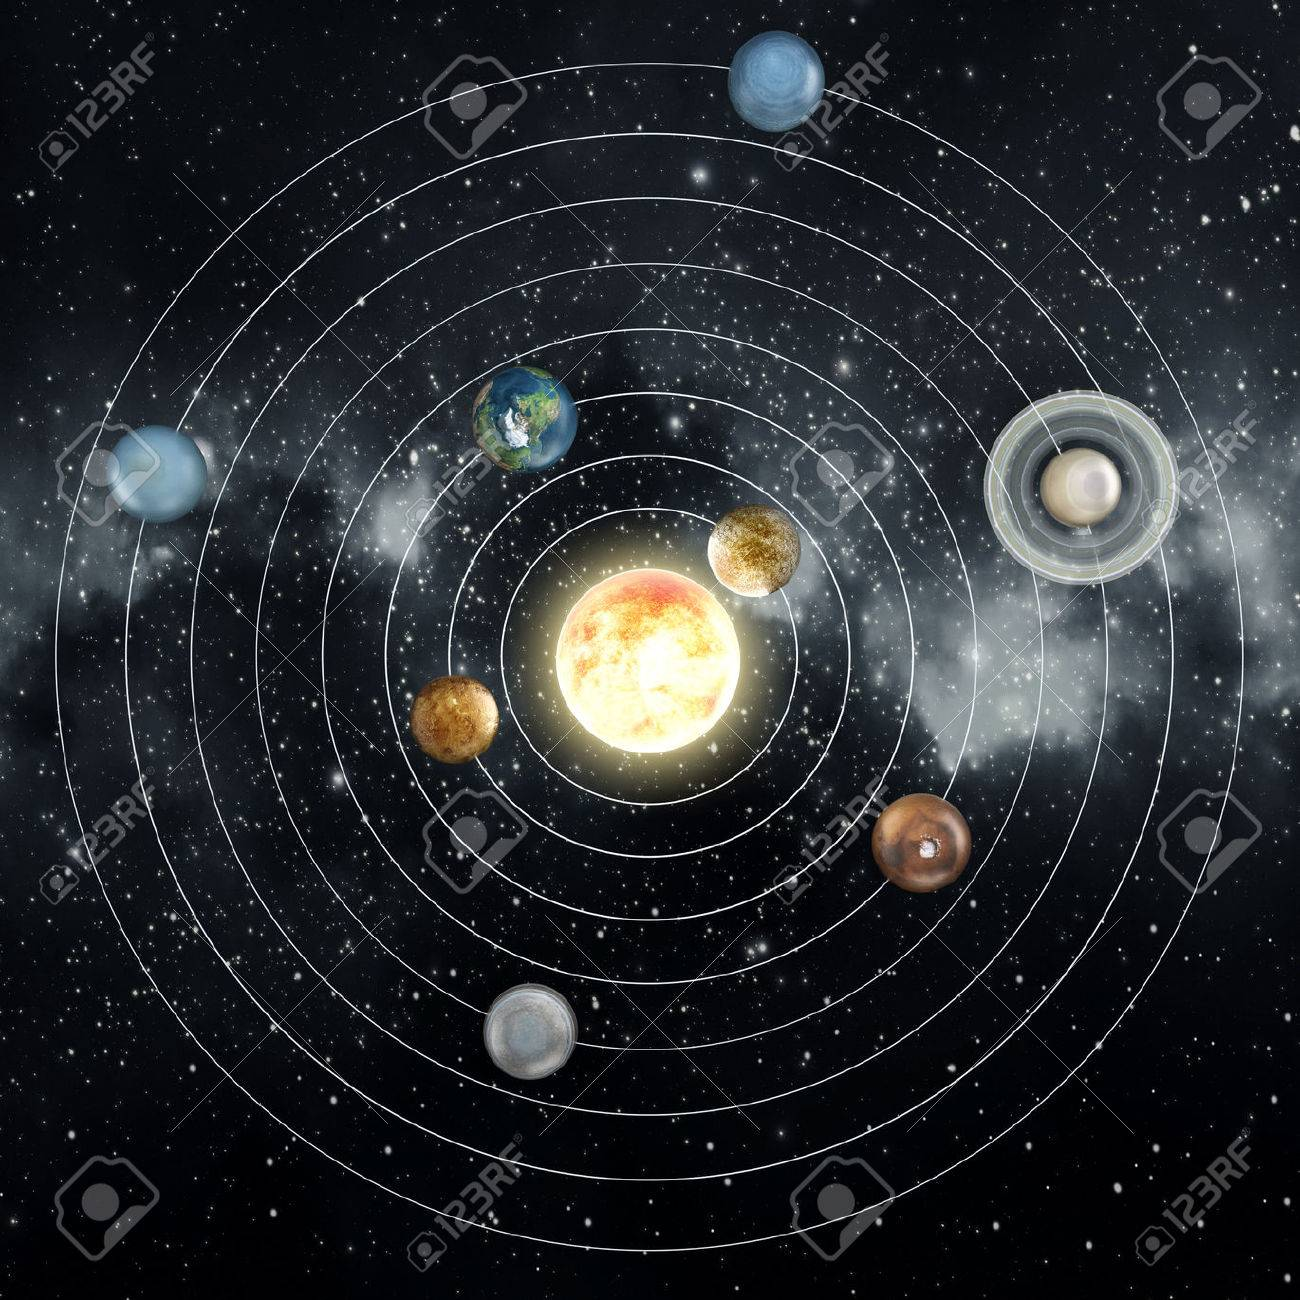 Solar system diagram in the space stock photo picture and royalty solar system diagram in the space stock photo 36751557 ccuart Choice Image